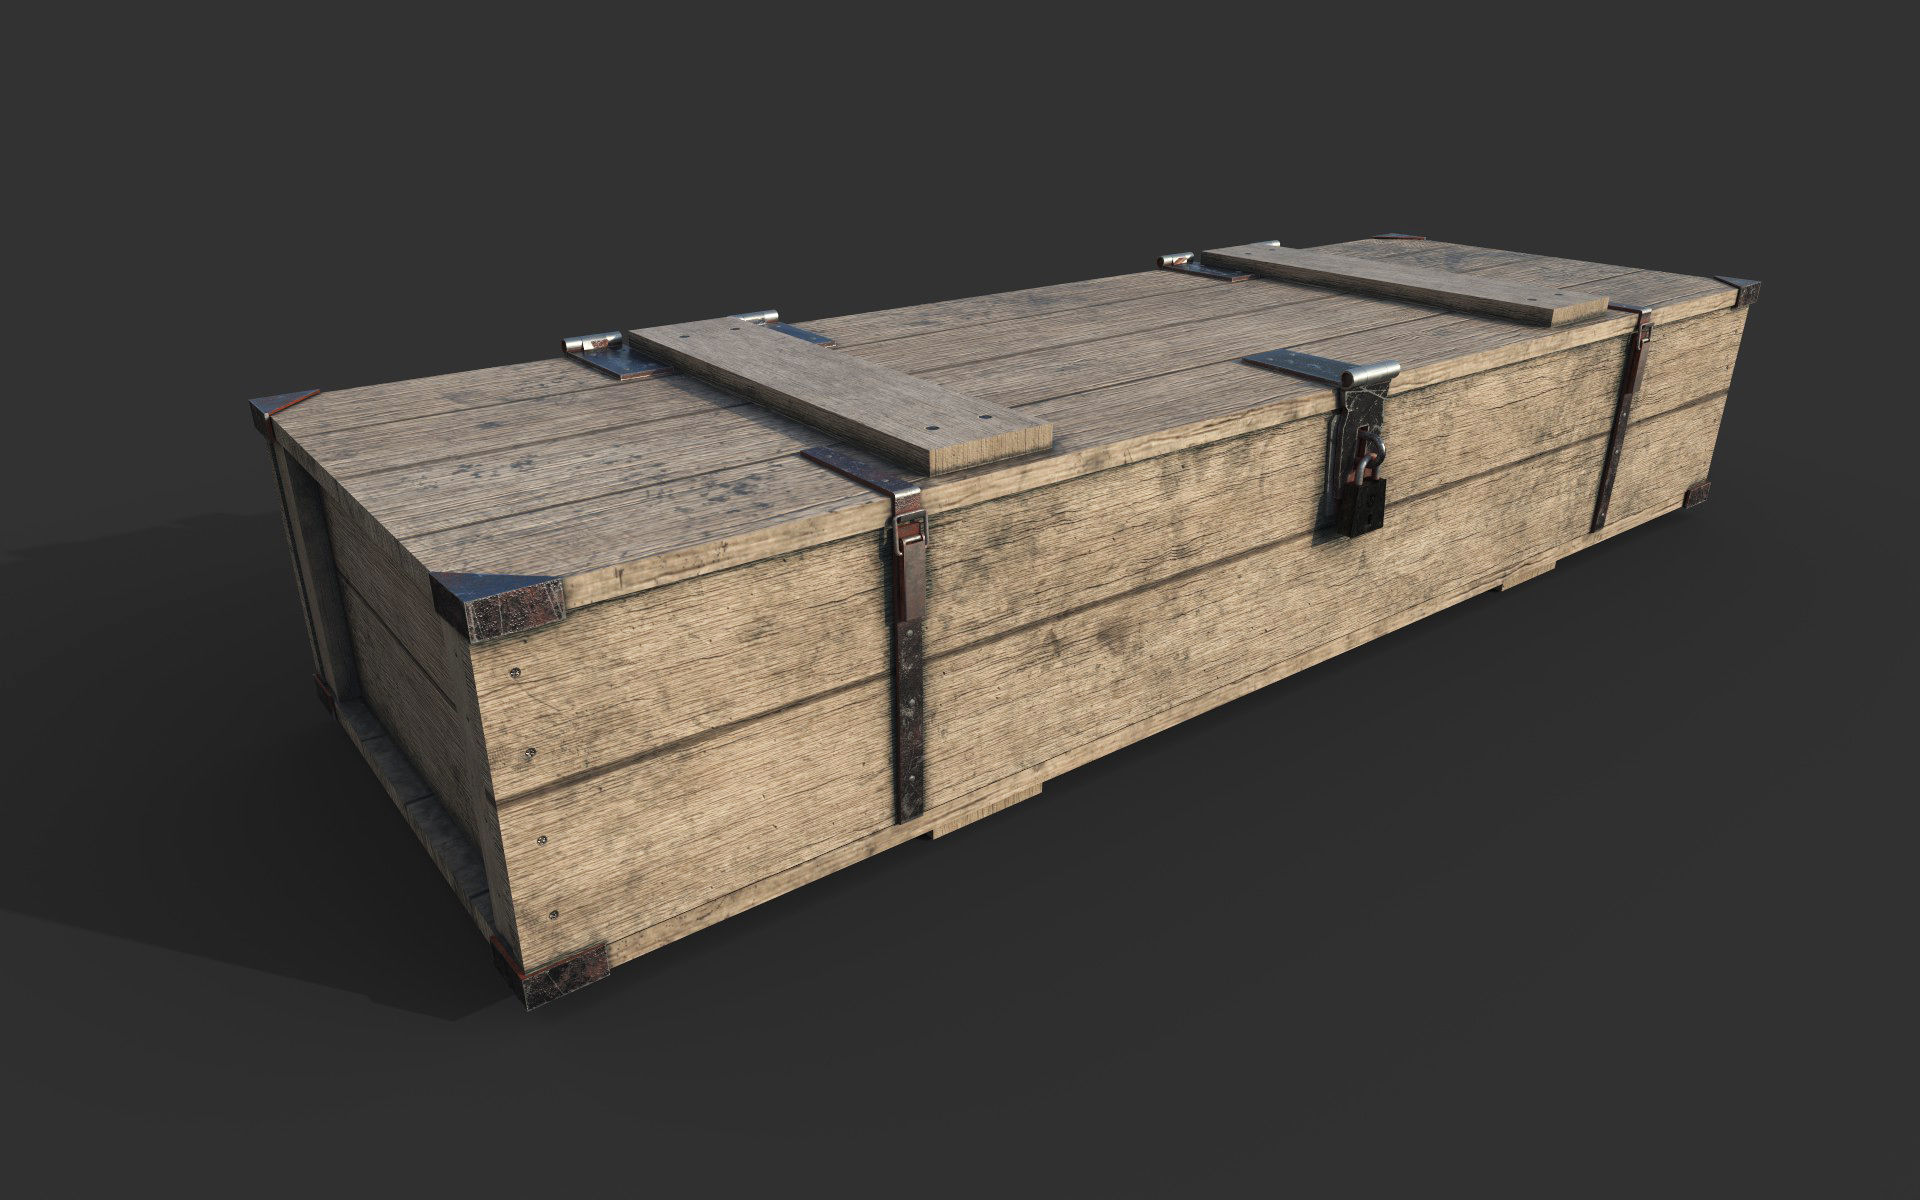 Wooden Weapon Crate 3d Model